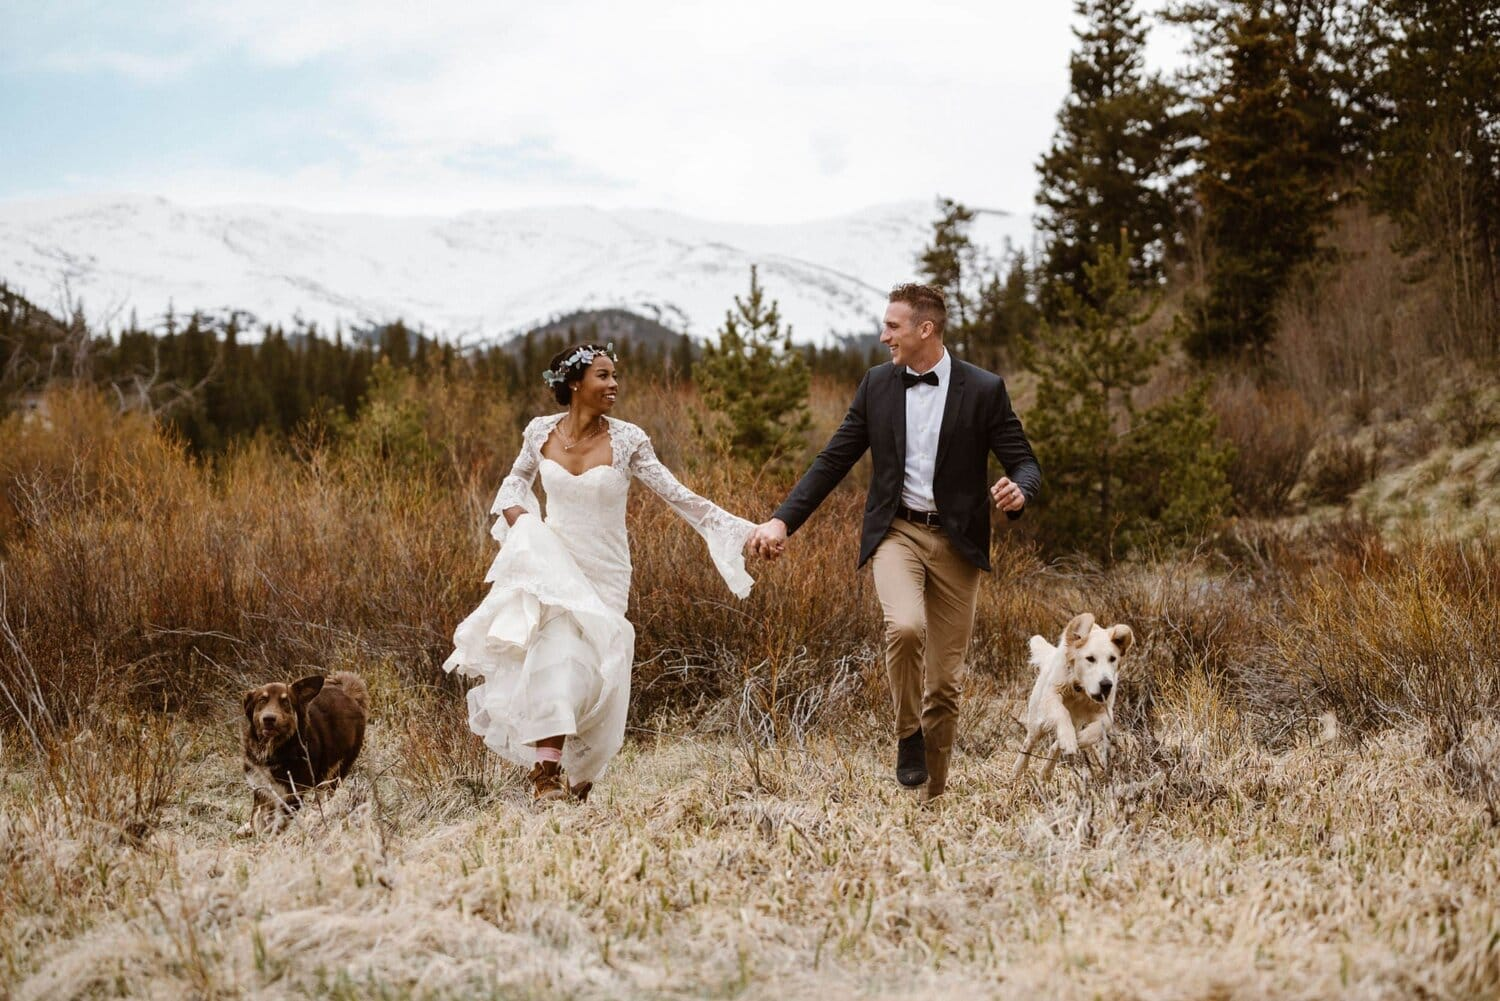 Bride and groom walk in a field with their two dogs.